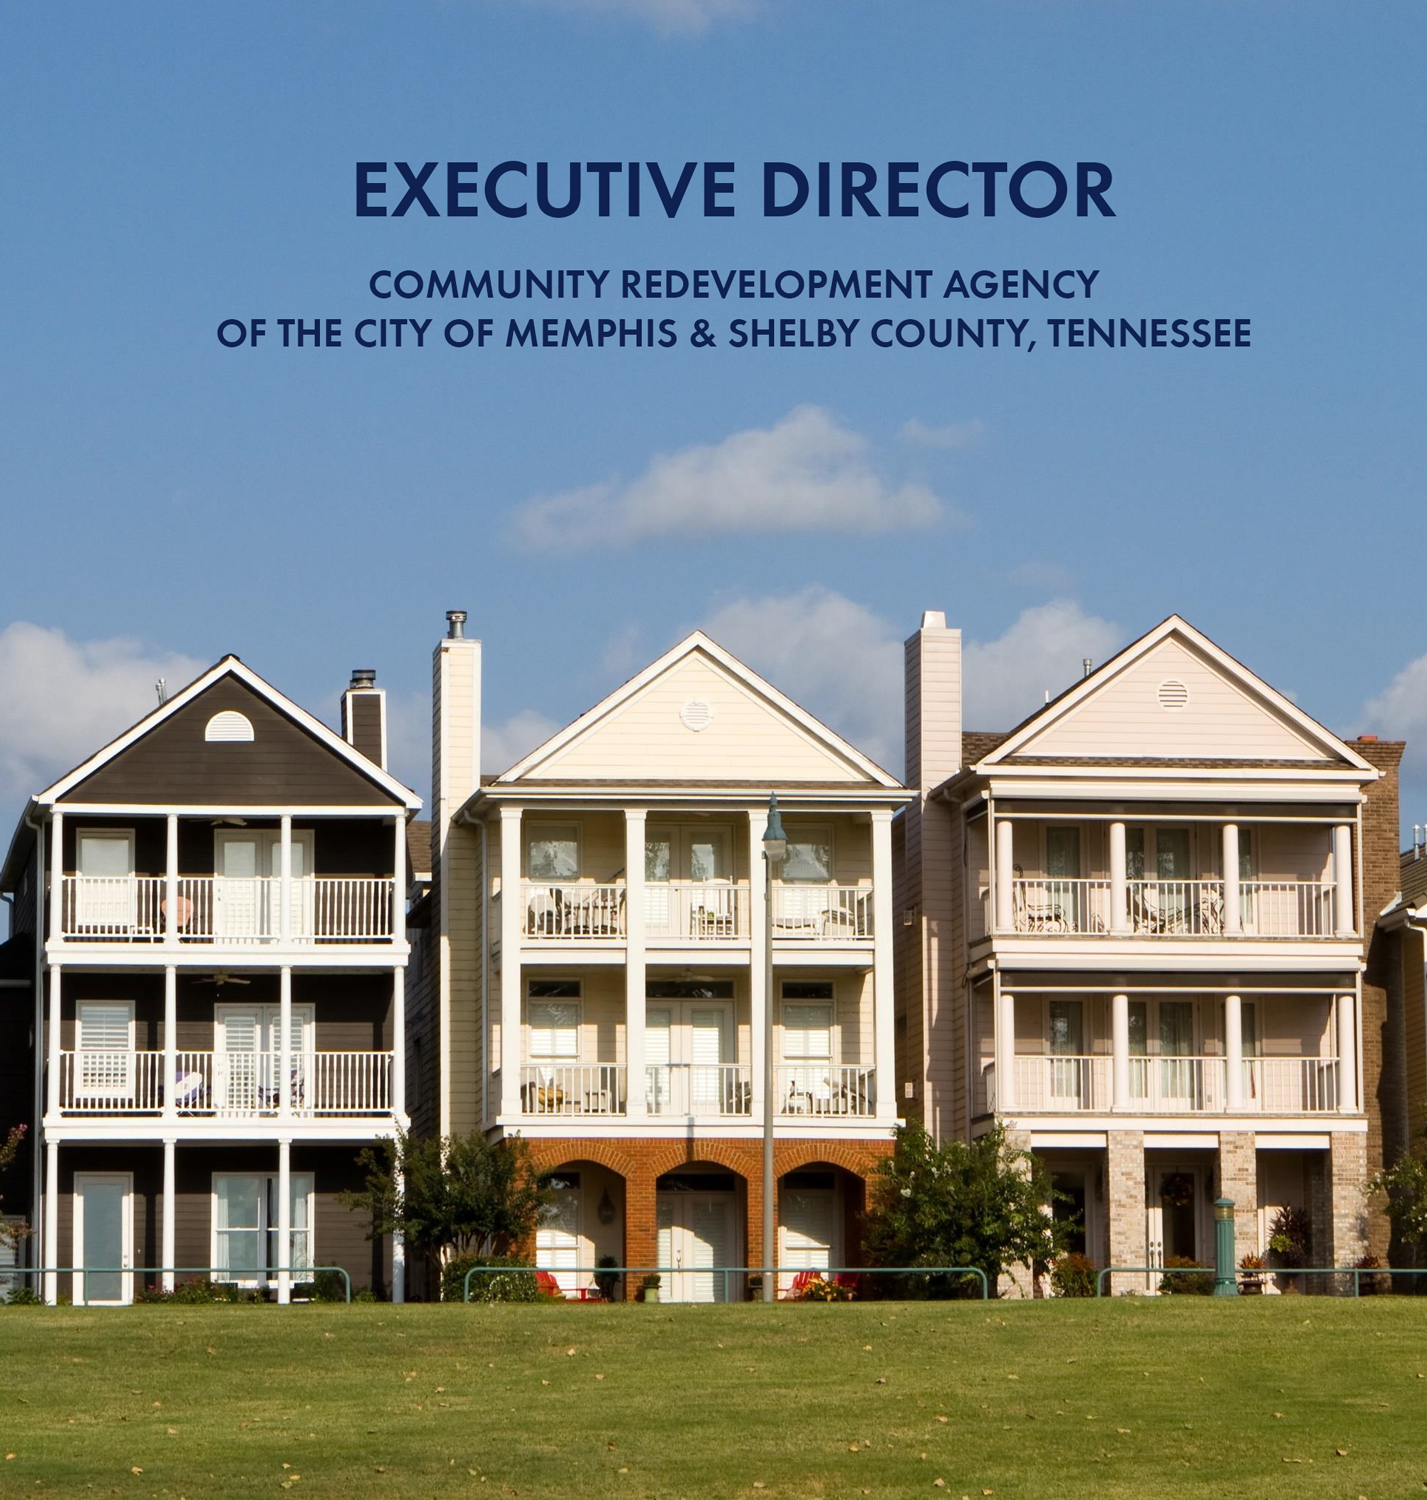 The Agency is seeking applicants who can operate and manage complex redevelopment activities and identify opportunities for new redevelopment areas. This  brochure  provides the requirements for the ideal candidate.